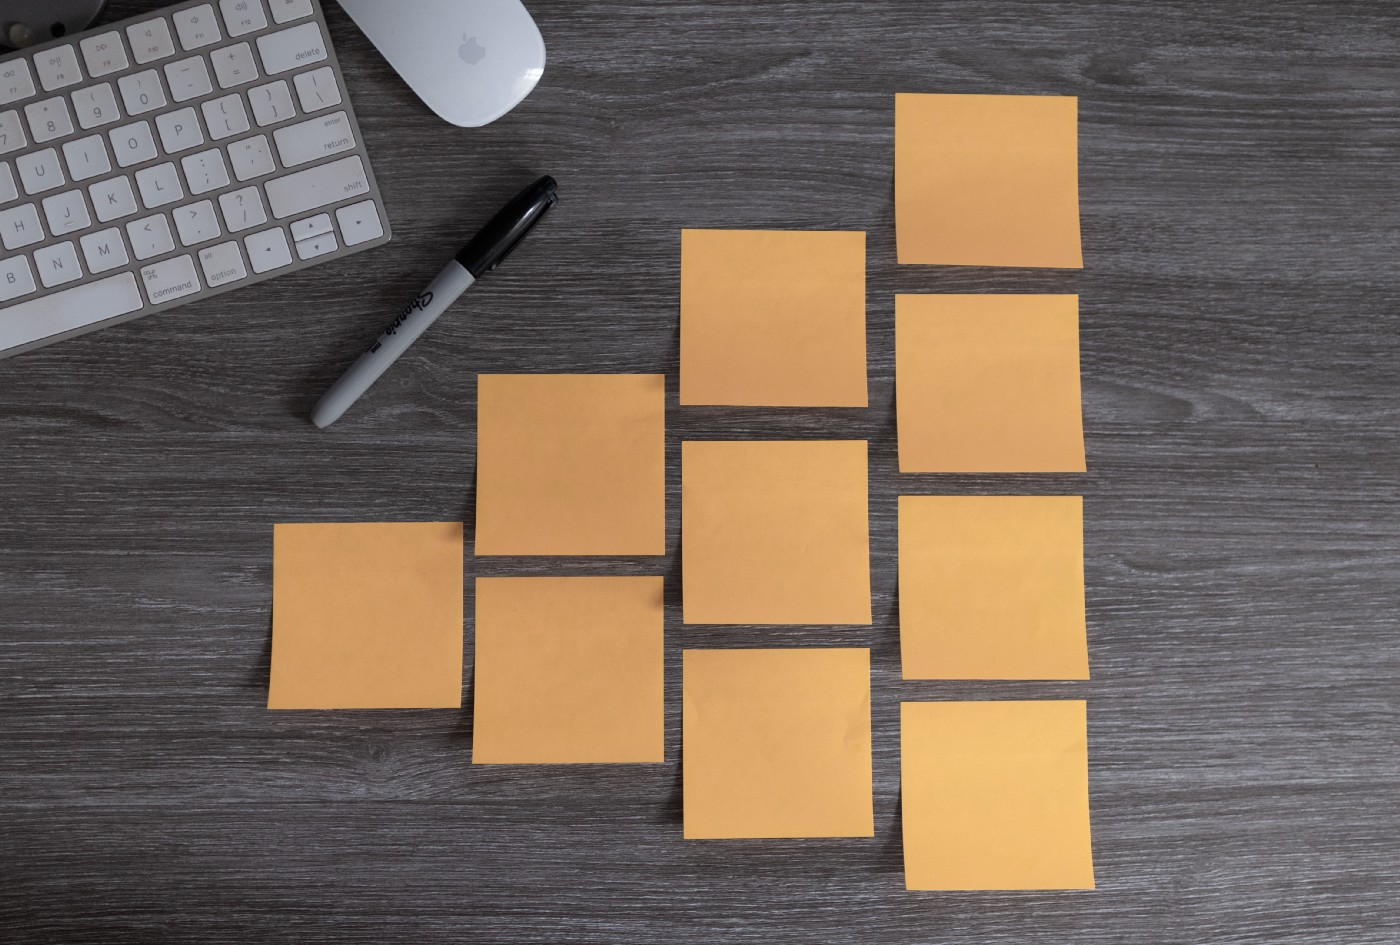 Picture of post its to symbolize learning and agile methods.